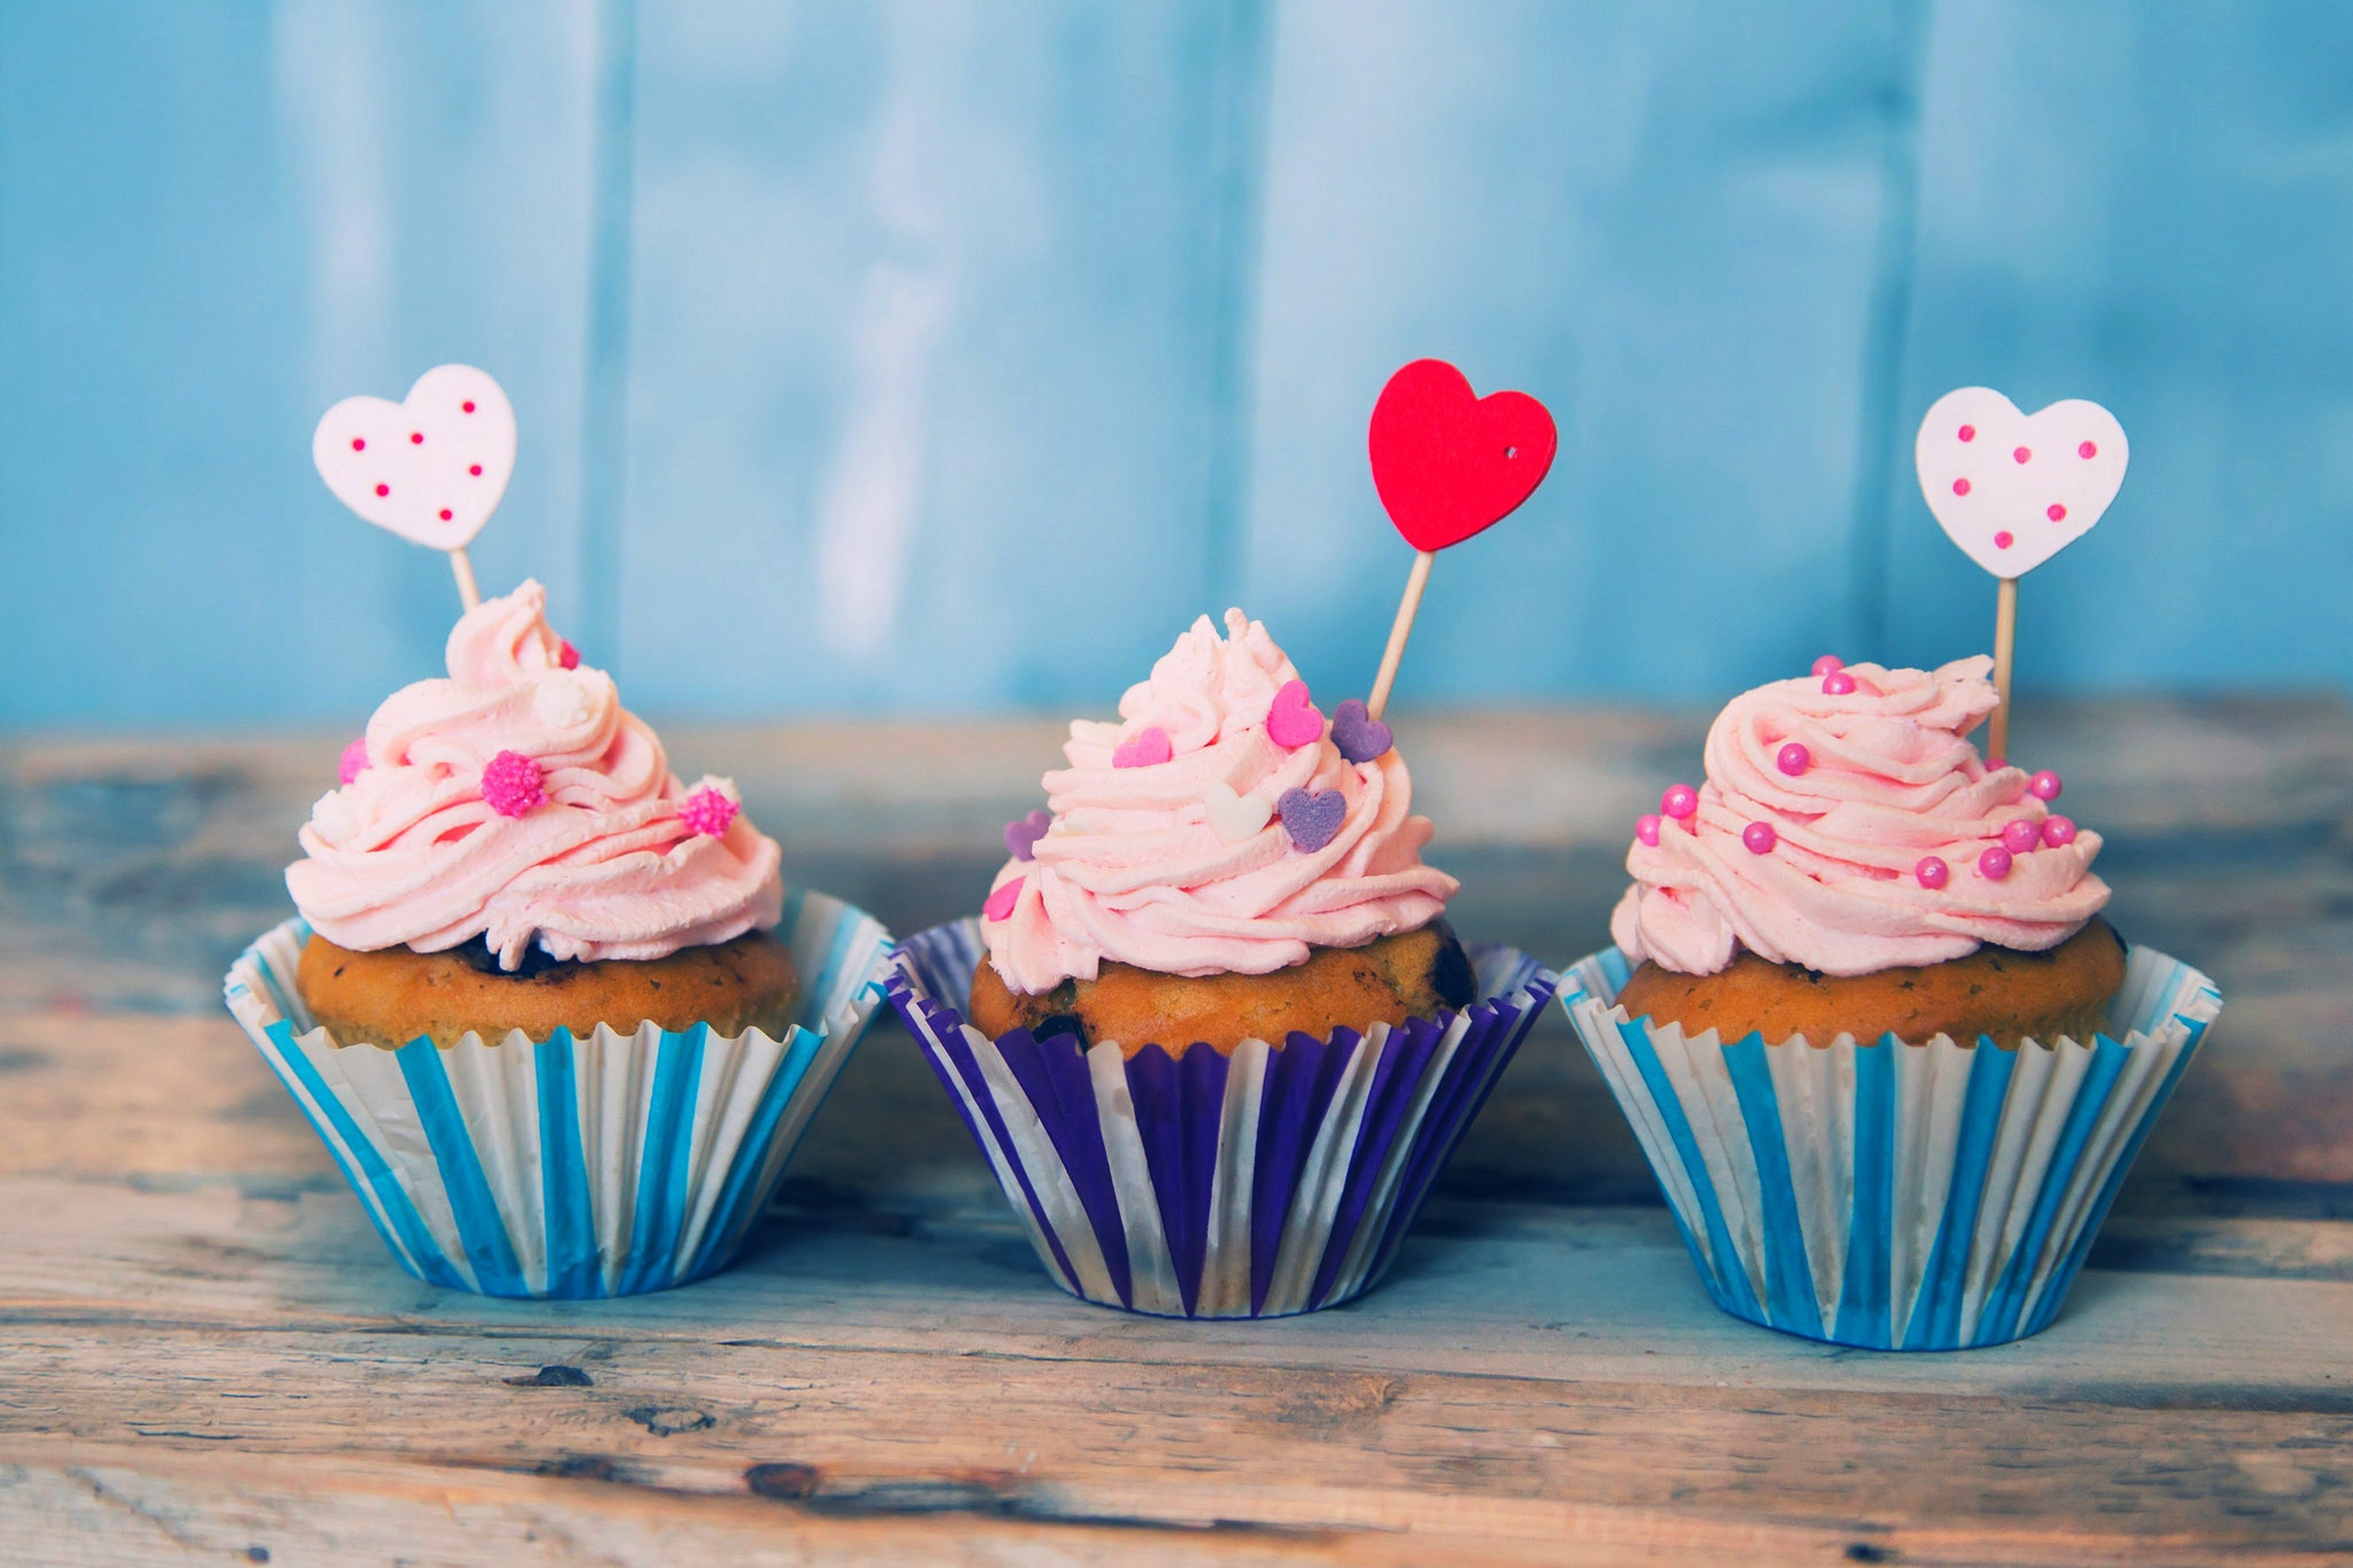 4k wallpaper cupcake (4000x2666) | pinterest | cupcake images